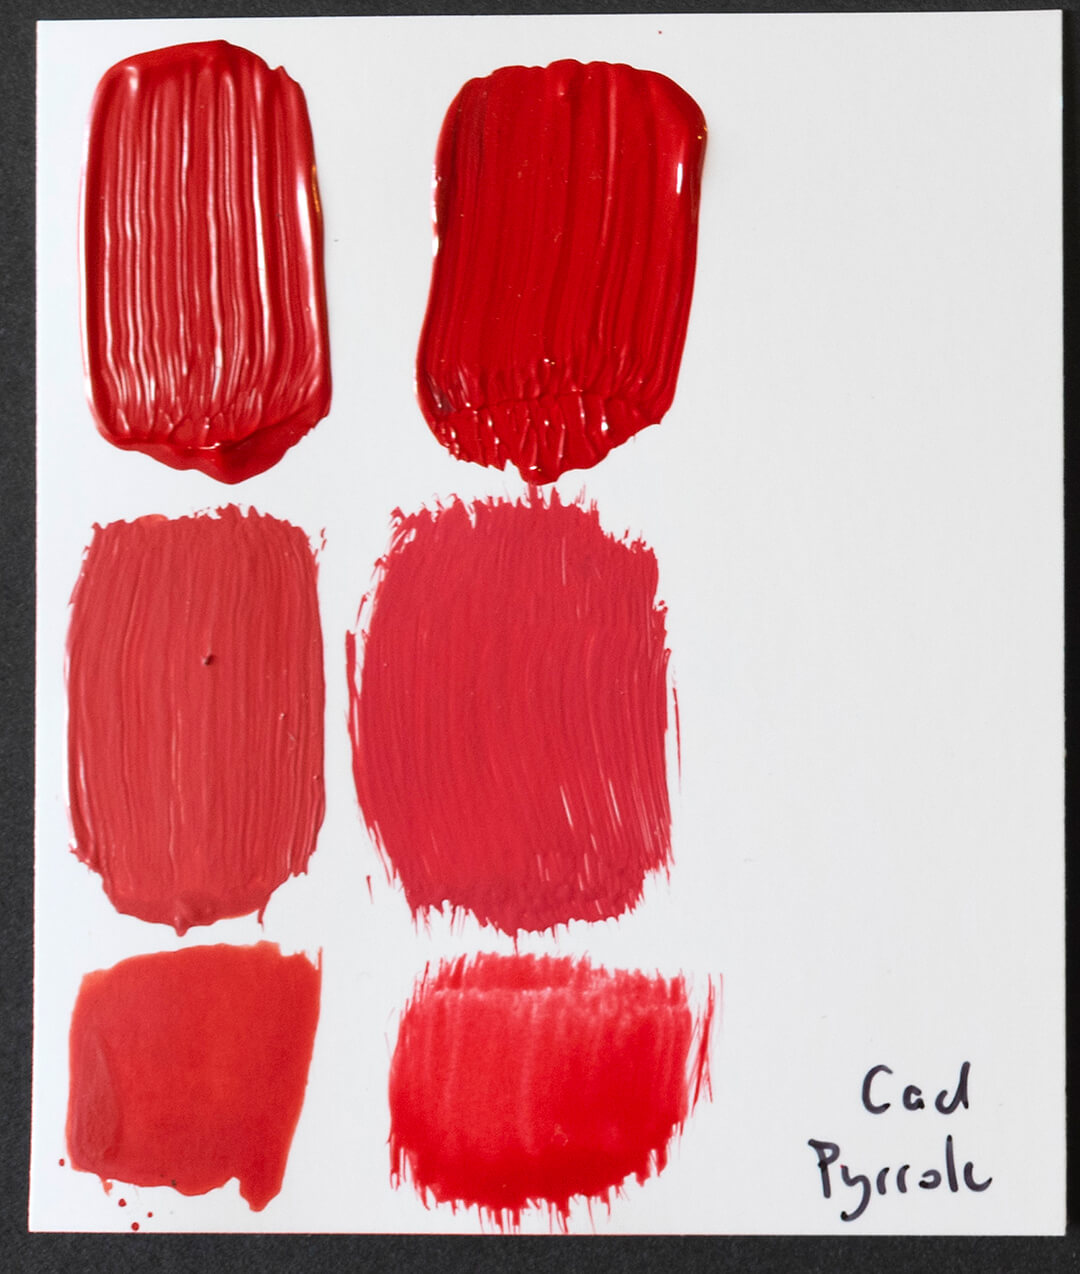 cadmium red swatches next to pyrrole red swatches